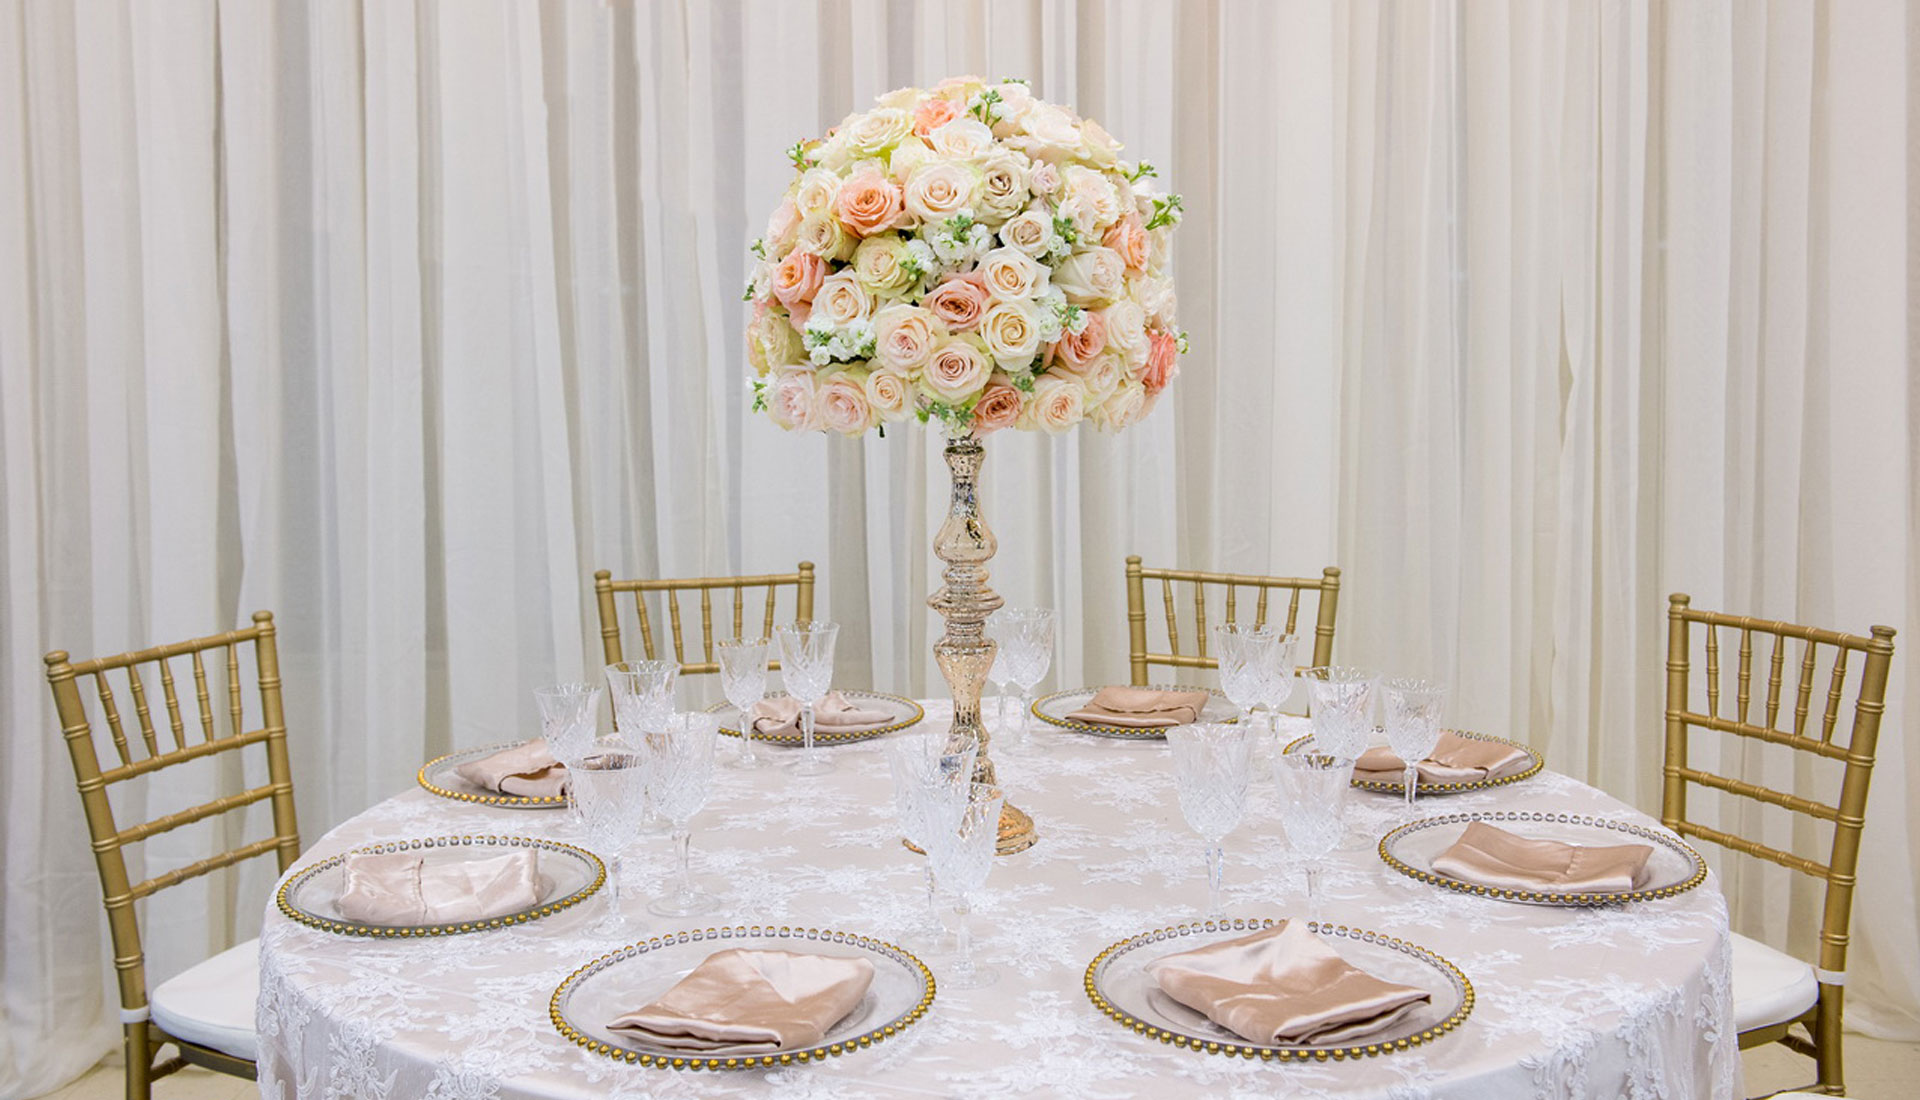 chair cover rentals in chennai office costco wedding dream decorations and rent high quality decor for your day